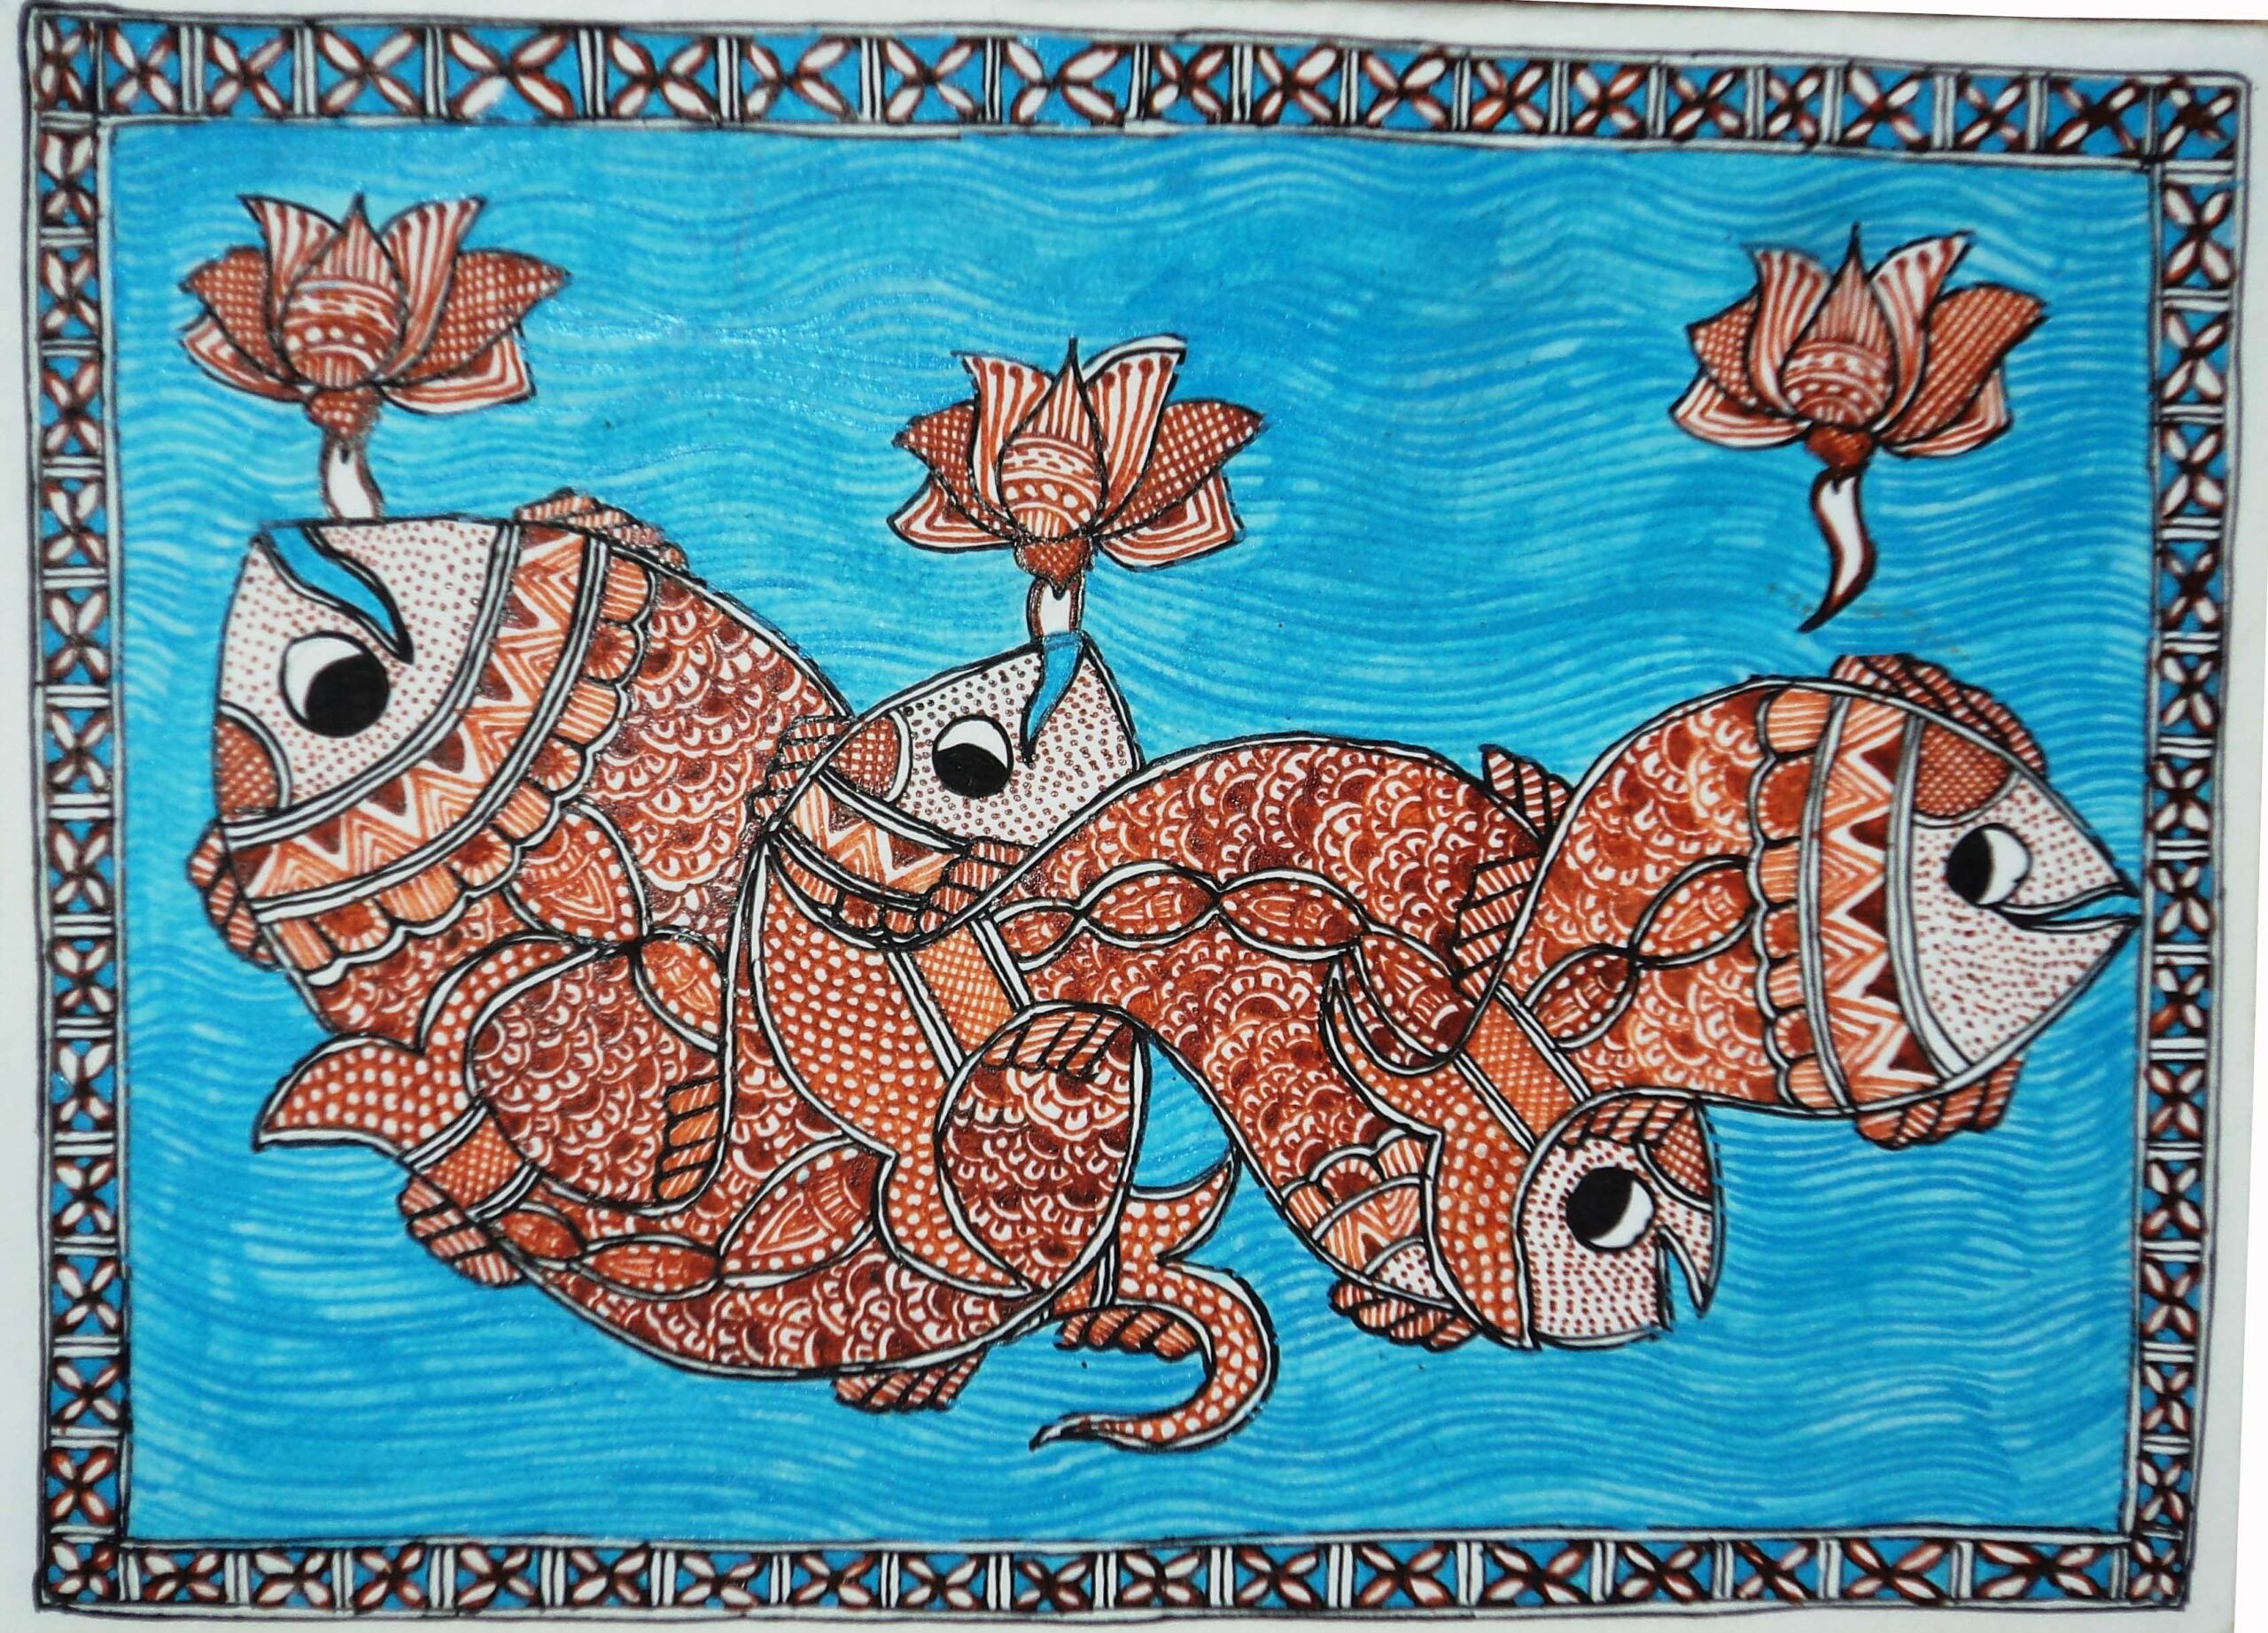 Mithila Painting of Fish in a River